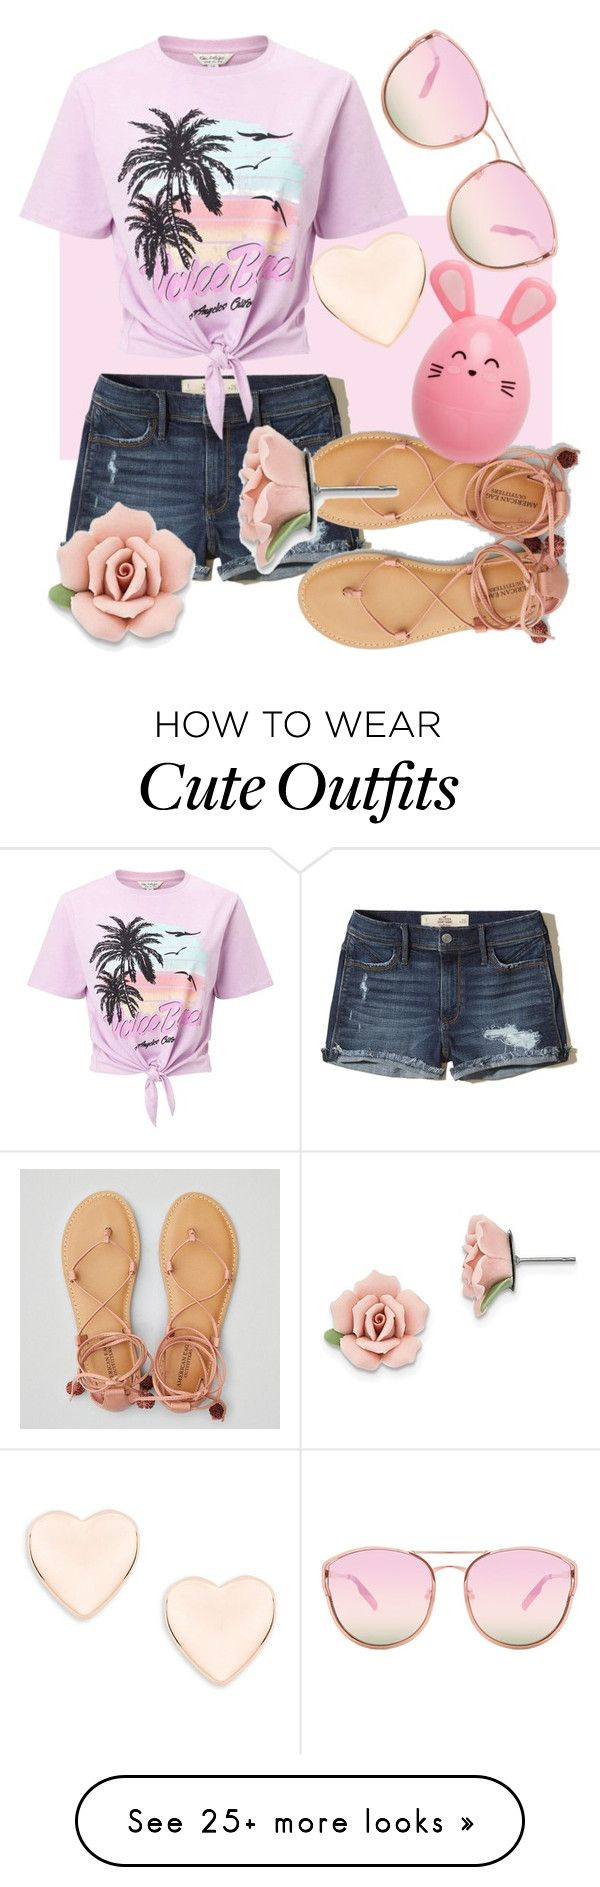 """I wish I had this cute outfit"" by theredstar on Polyvore featuring Hollister Co., Miss Selfridge, American Eagle Outfitters, Ted Baker, Quay and 1928"